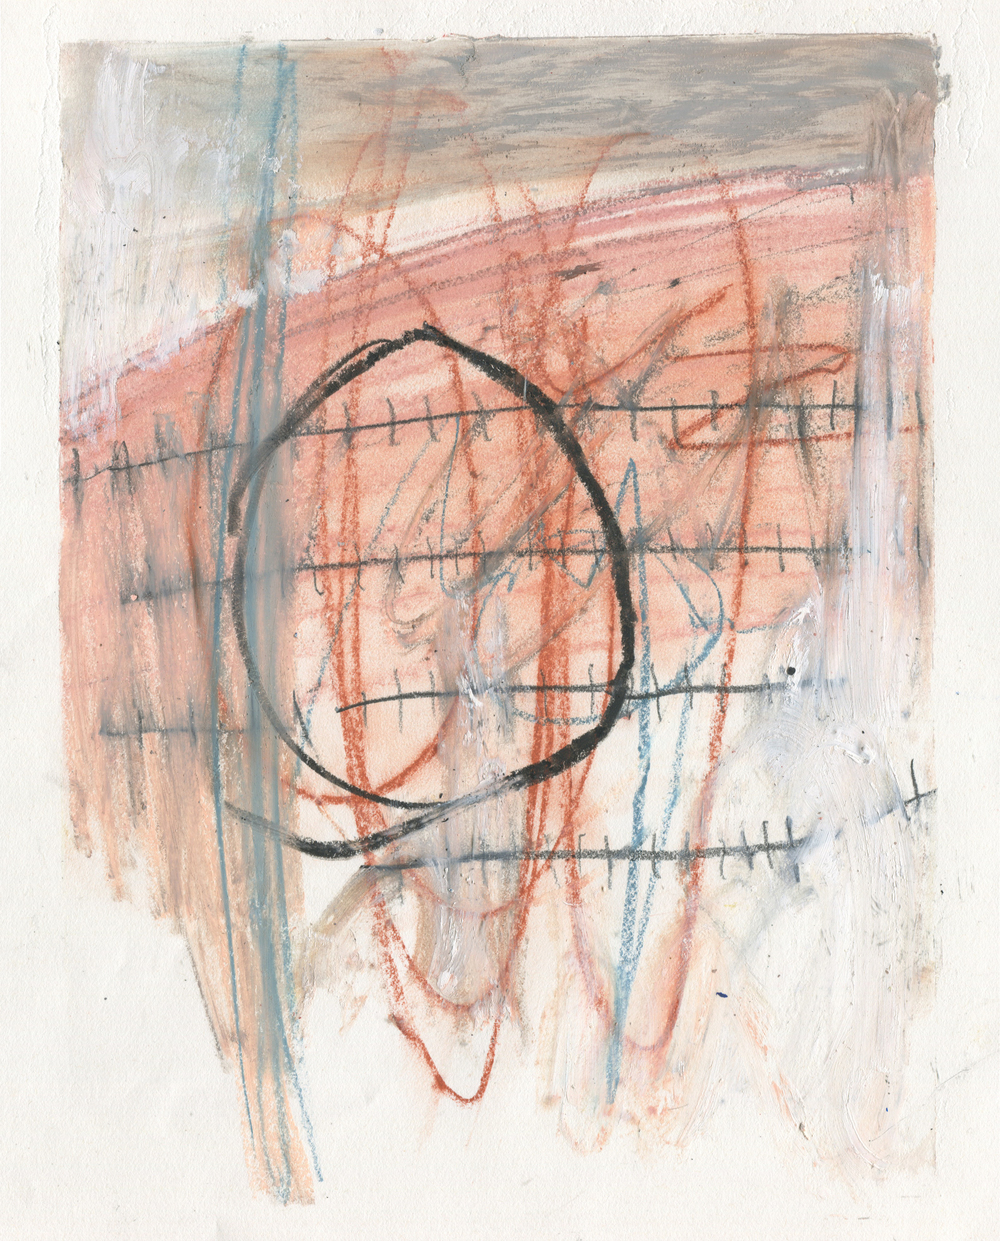 Periodicity , 2016  14 x 11 inches  Crayon, Oil Pastel, Conte Crayon, Graphite and Oil Stick on Paper